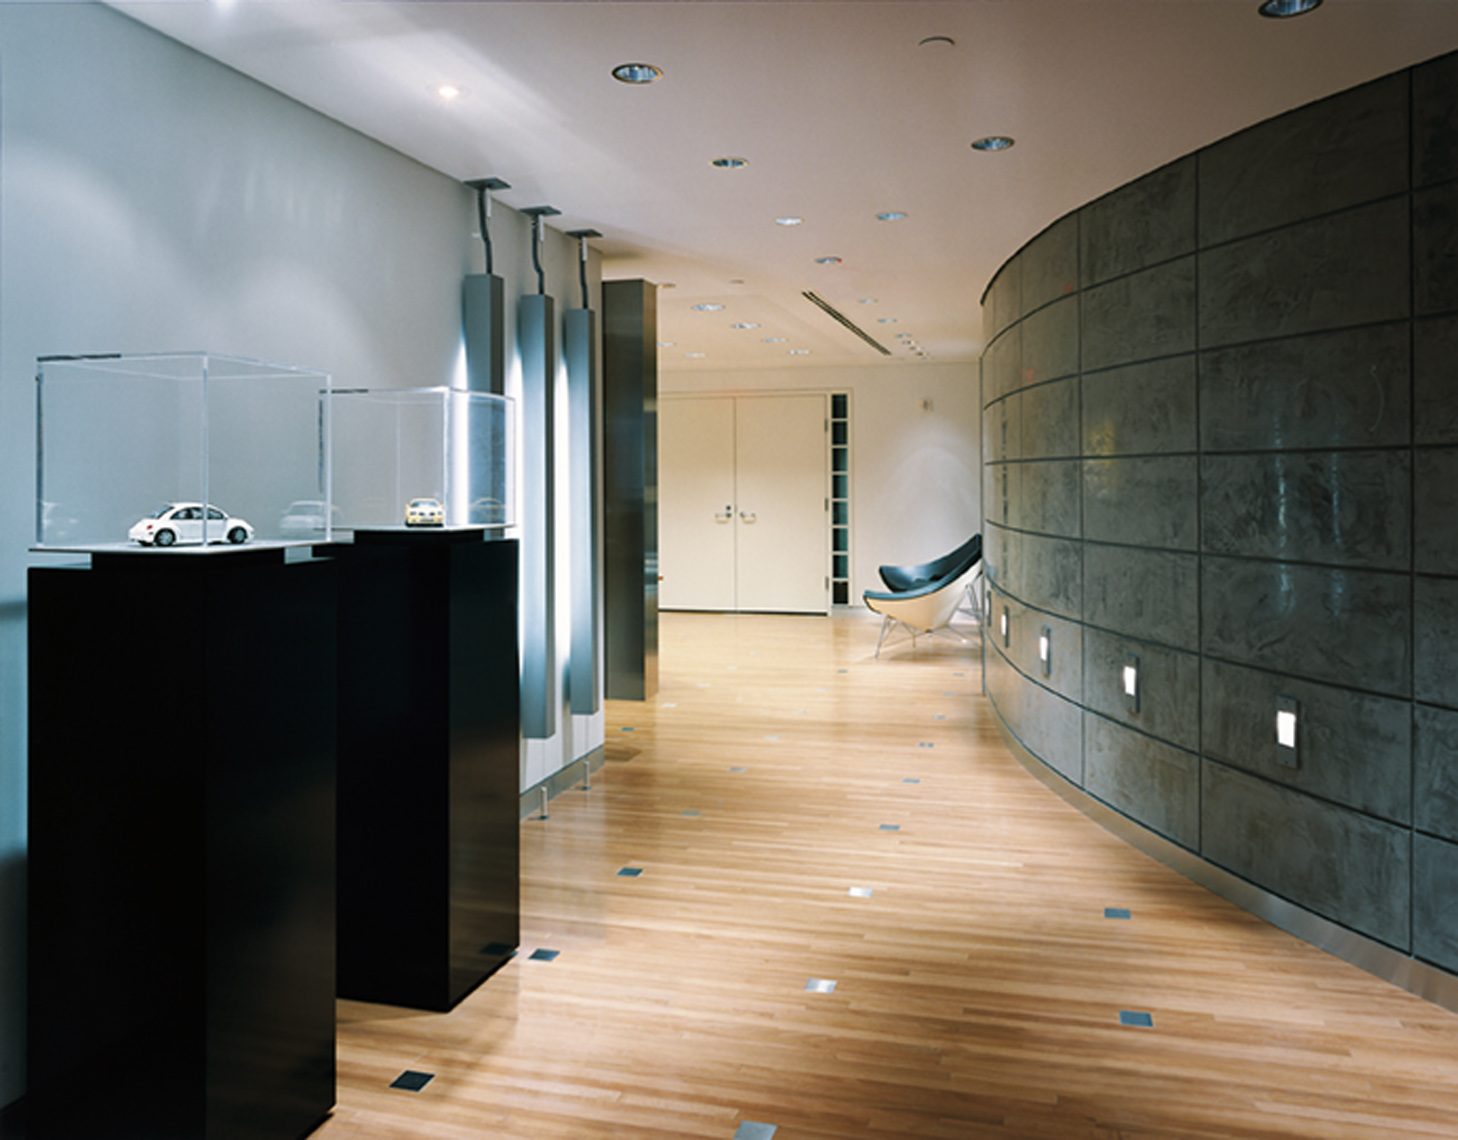 architectural photograph of an office interior by Dan Poyourow